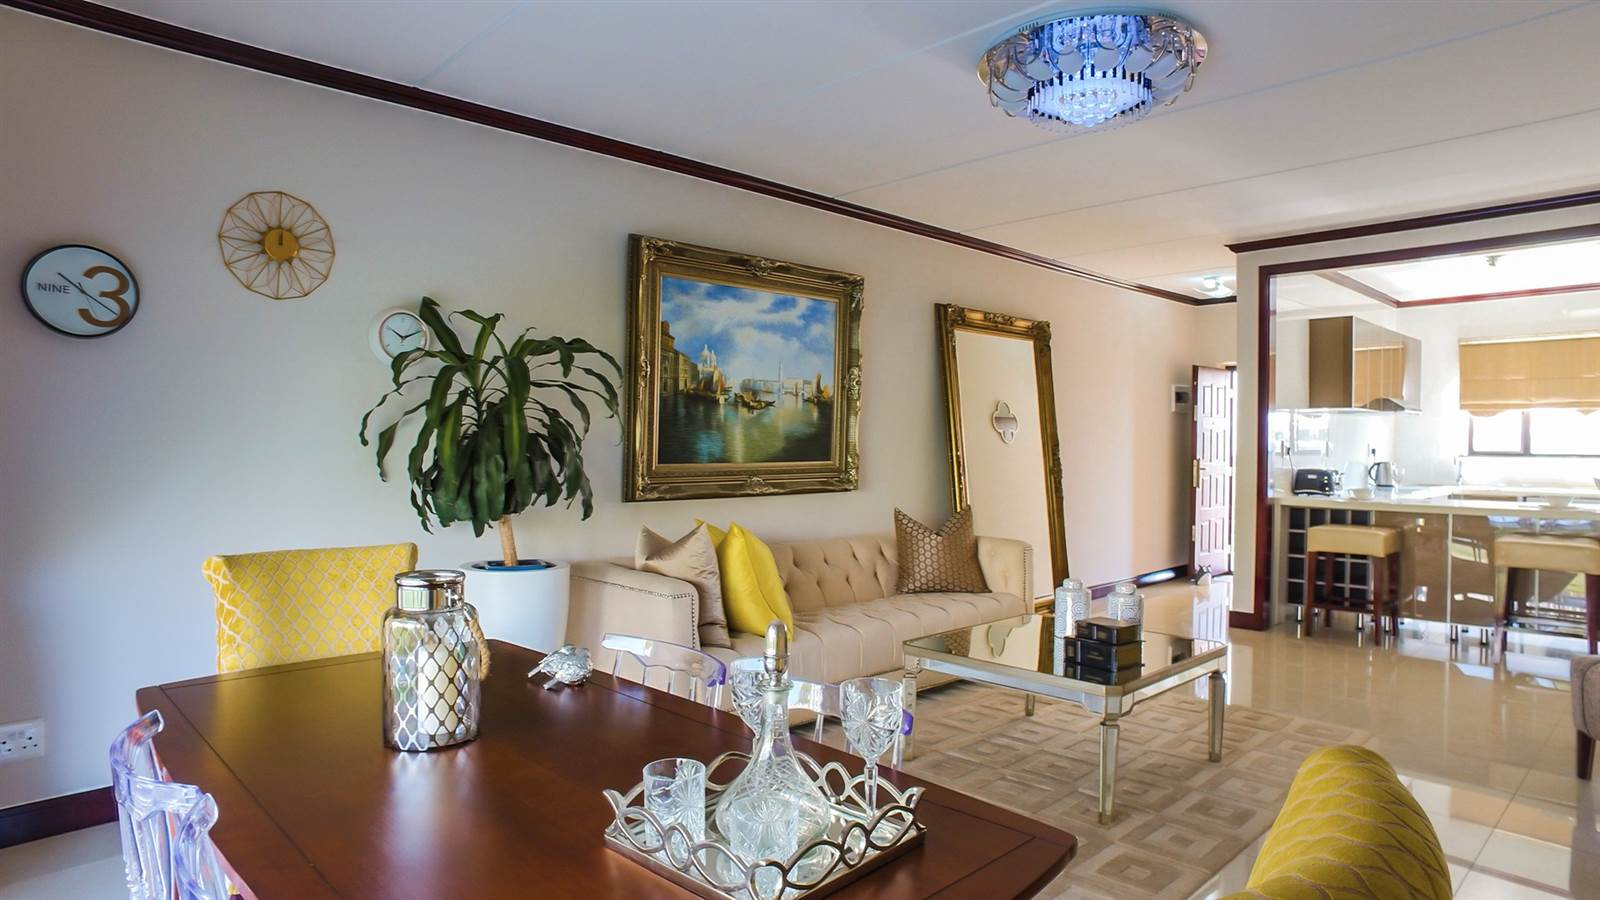 2 Bedroom Apartment for sale in Fourways ENT0040134 : photo#6